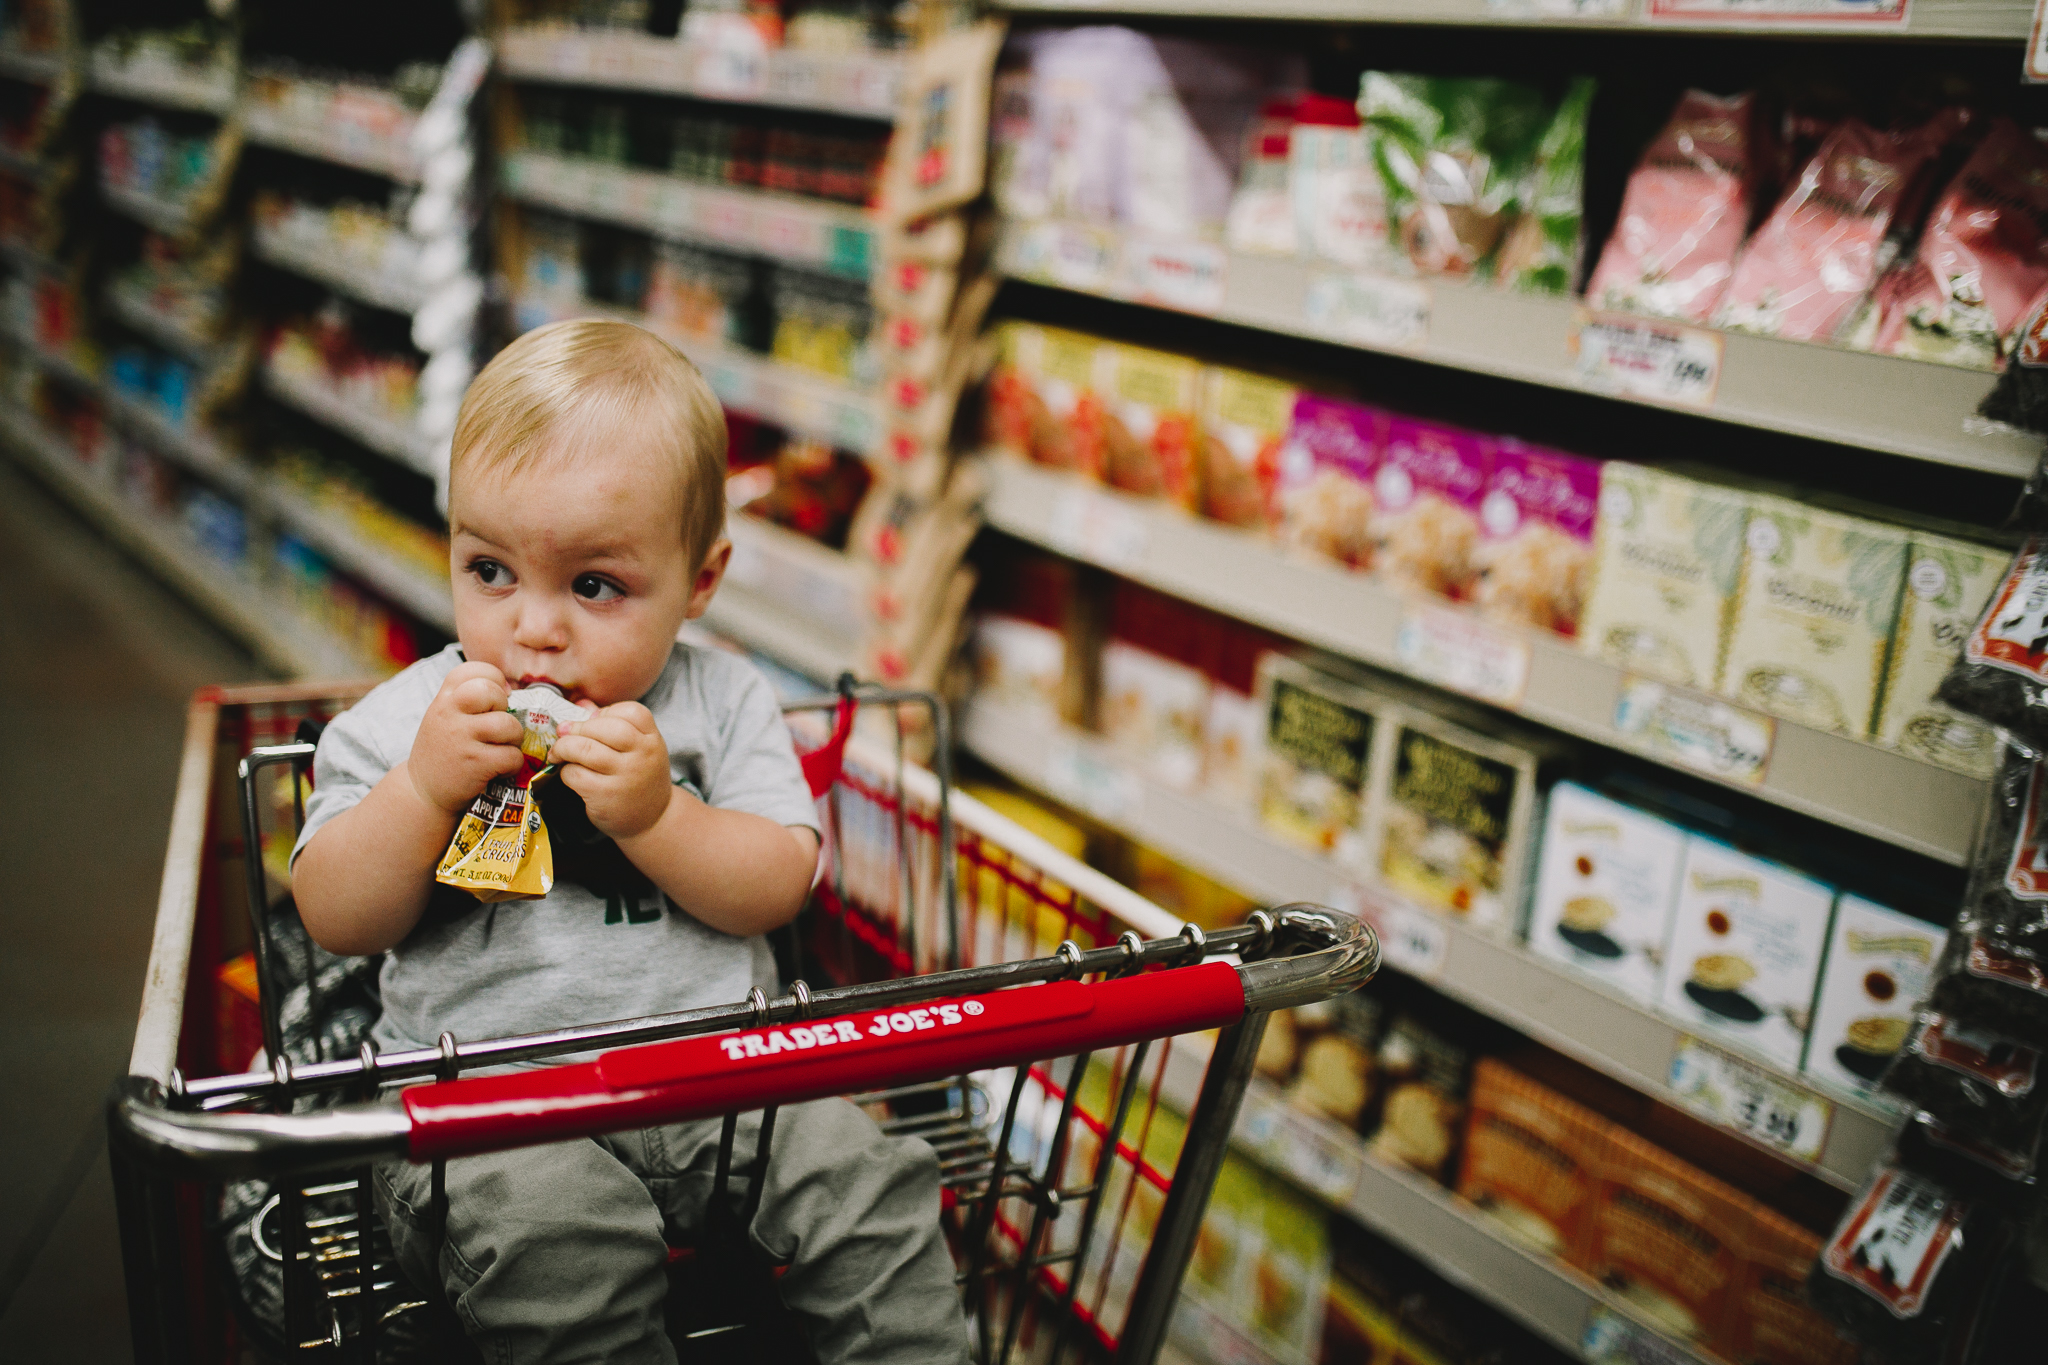 Archer_Inspired_Photography_Trader_Joes_Lifestyle_Photographer_Morgan_Hill_California-74.jpg